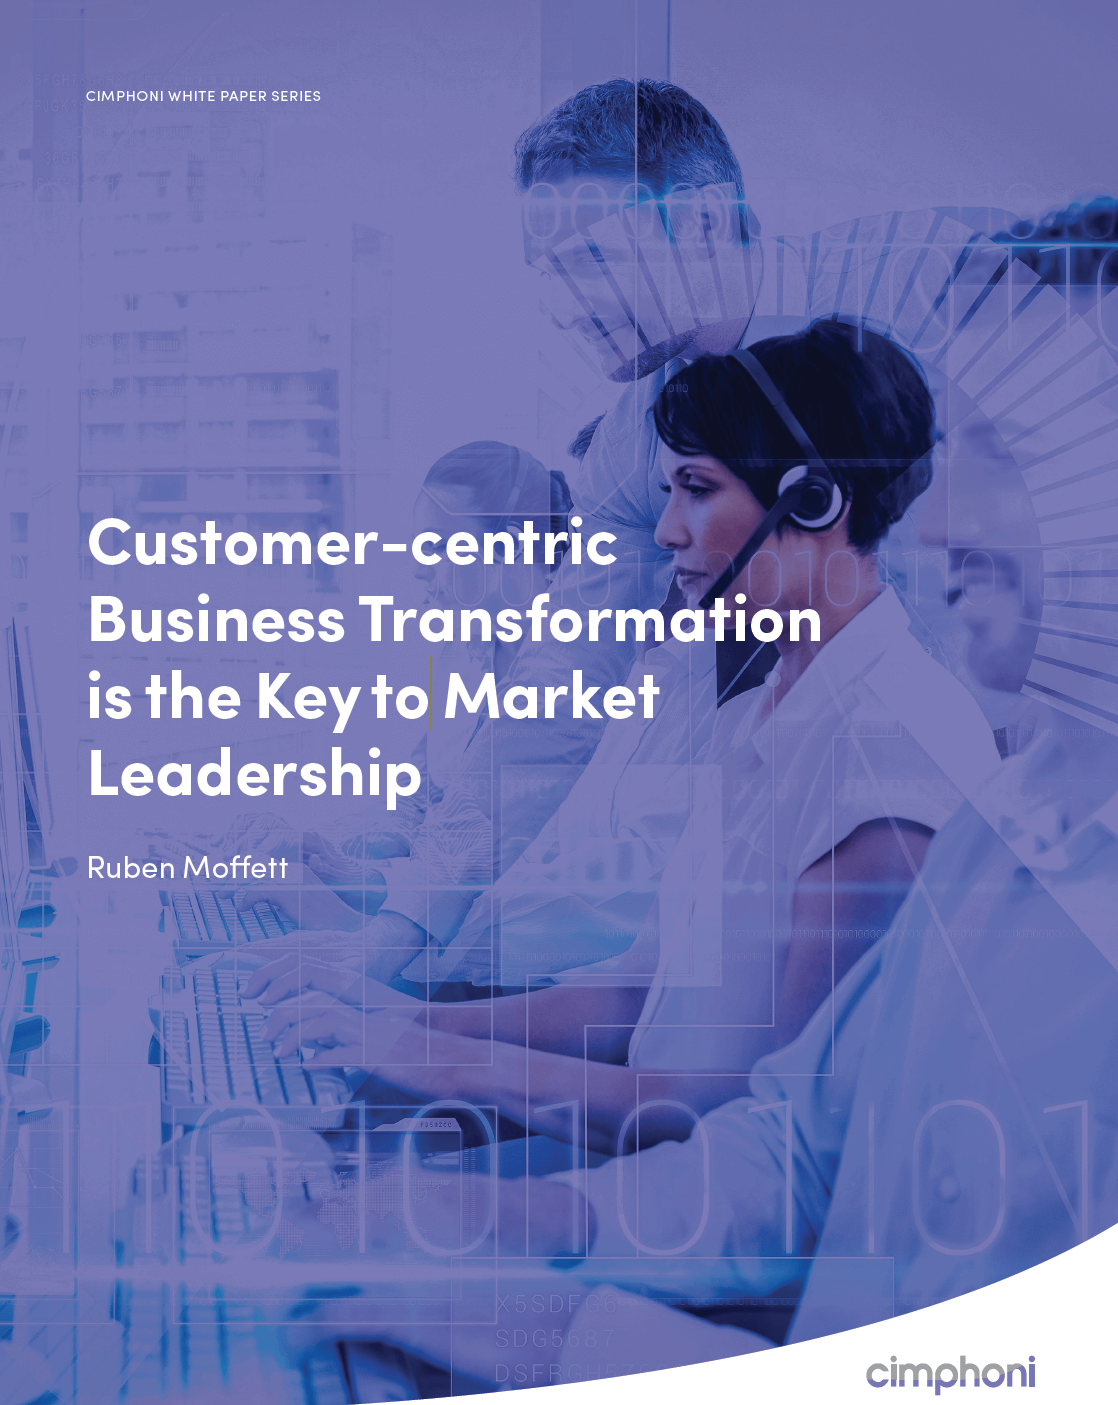 Customer-centric Business Transformation is the Key to Market Leadership